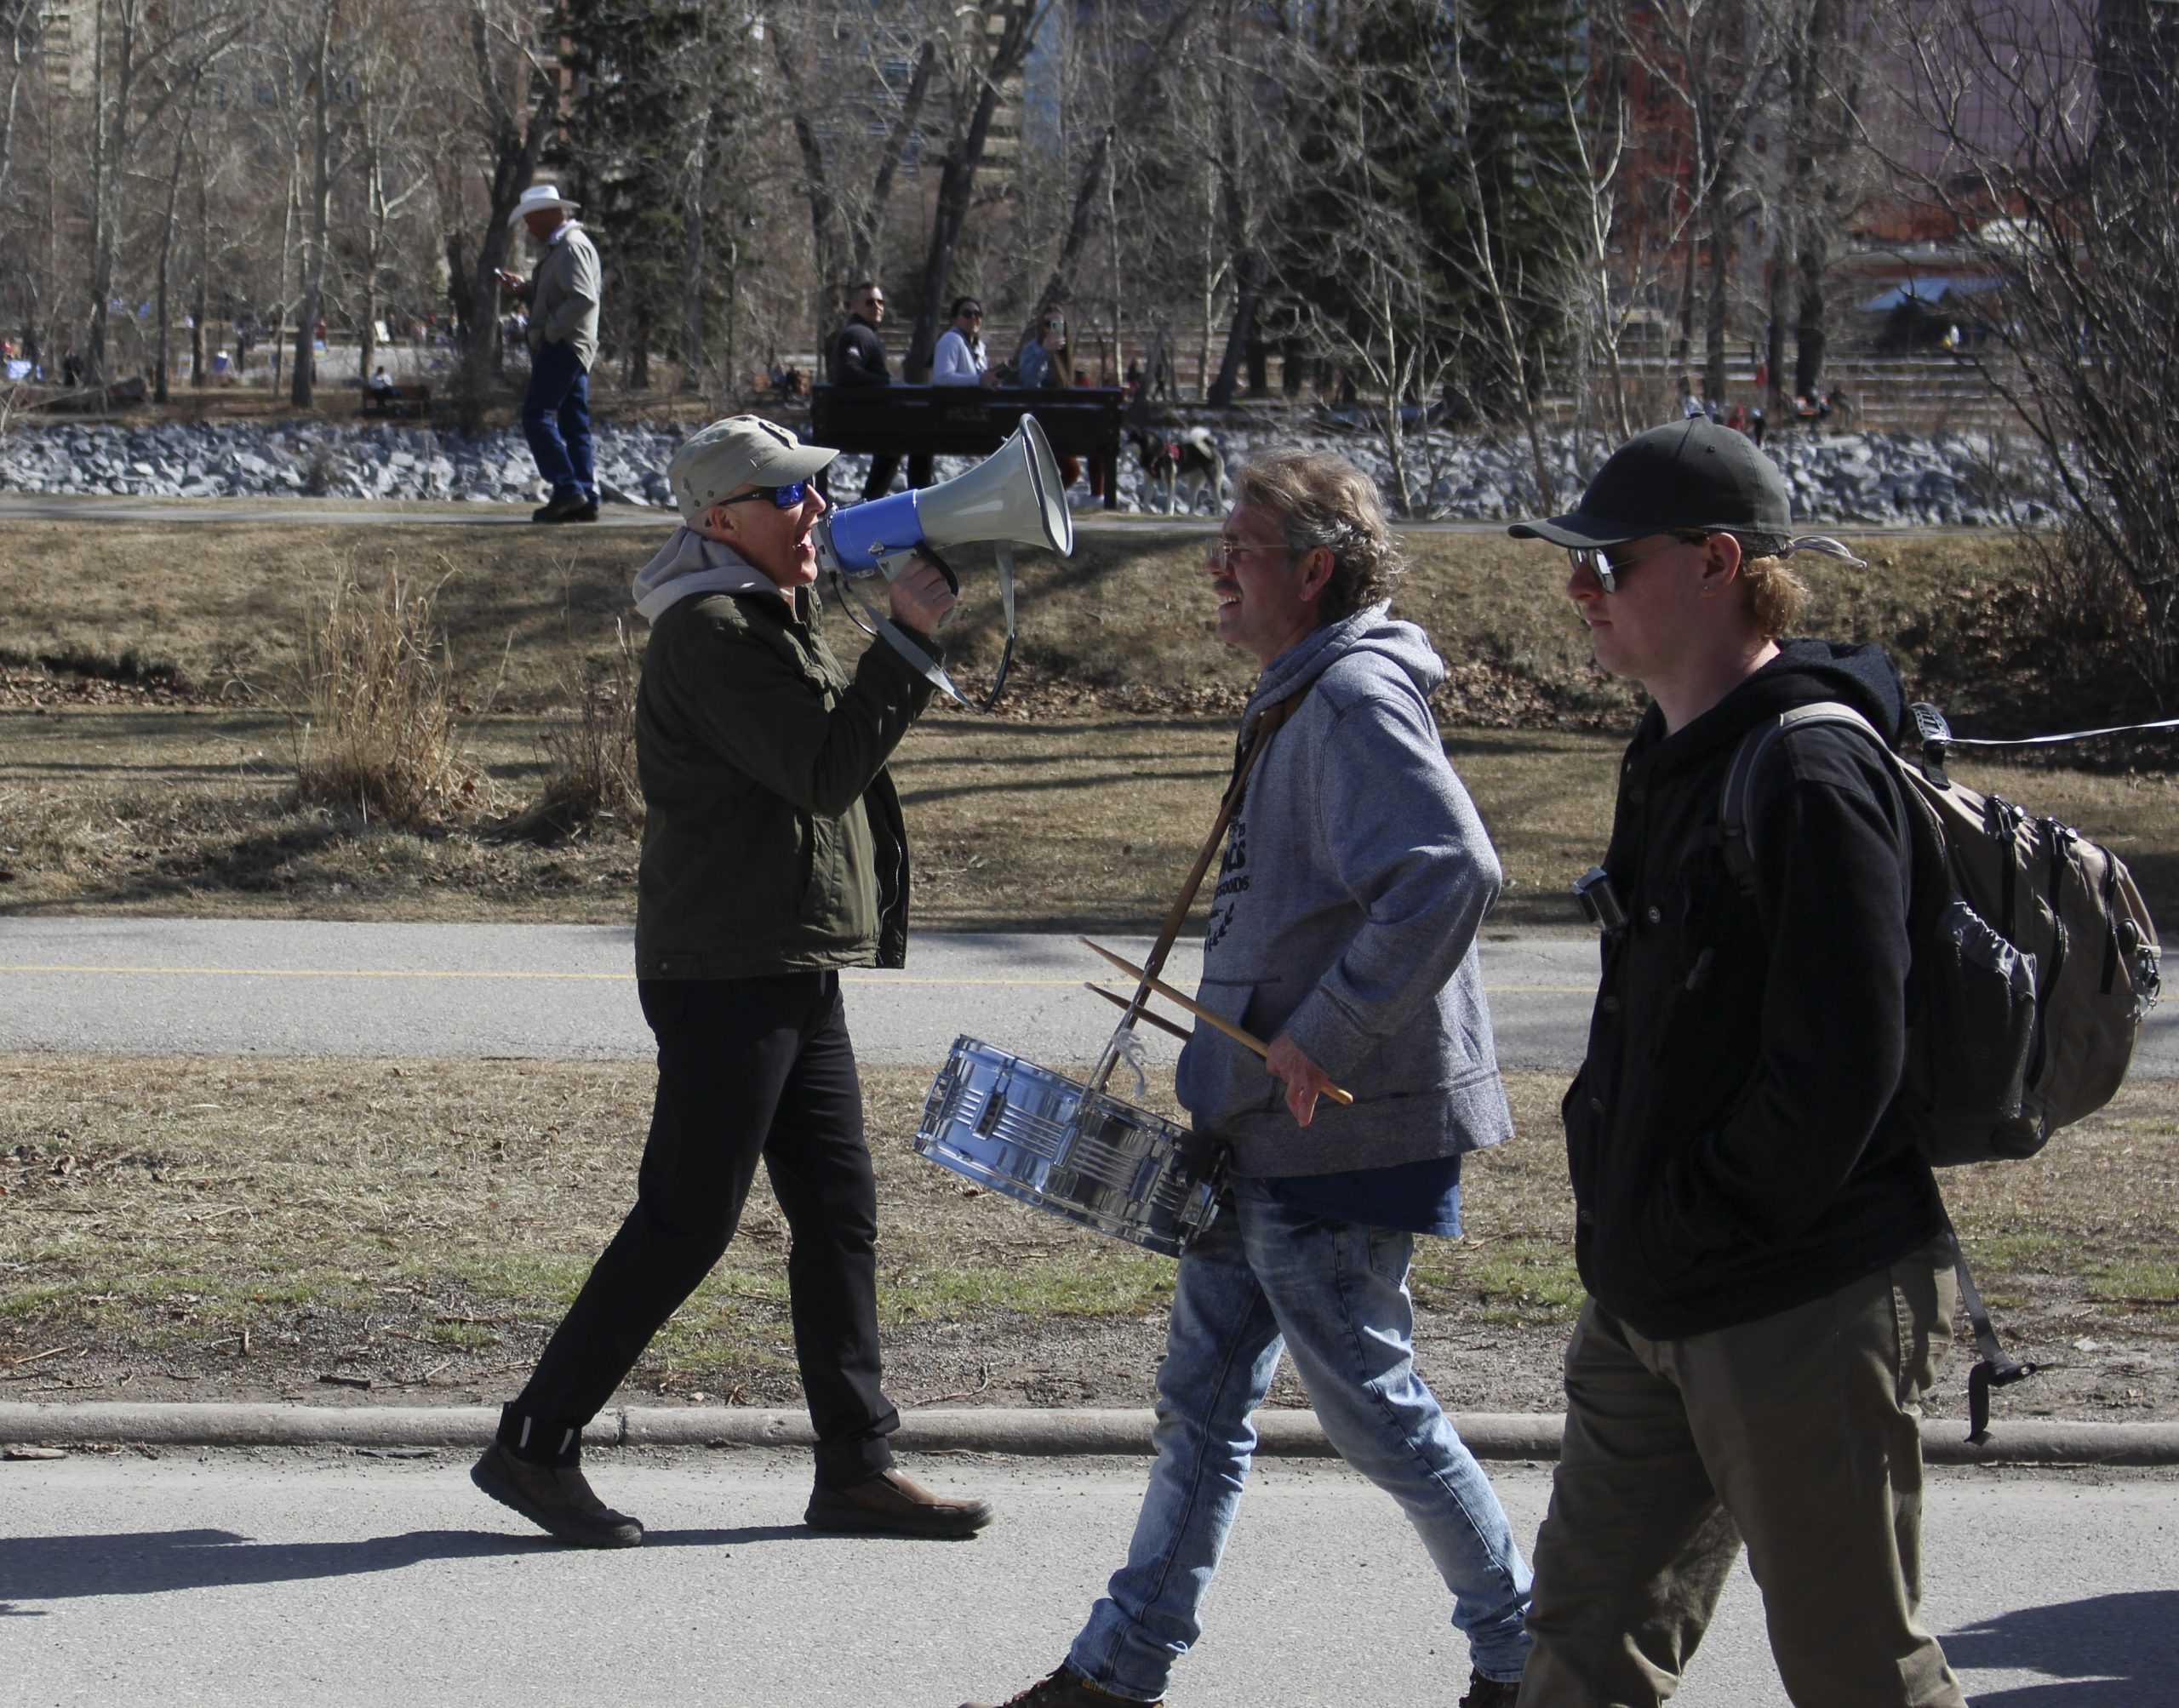 Brad Carrigan marches and holds a megaphone and shouts toward protestors at a Walk for Freedom march on Memorial Drive near the Sunnyside community in Calgary on April 3, 2021. Carrigan is the organizer for Walk for Freedom, and has been since June of 2020. He leads the Walk for Freedom, but he still participates in other protests with Artur Pawlowski, and with the Calgary Freedom Alliance. Walk for Freedom was established by Freedom Unity Alliance, and according to their website, they are a non-profit, non-denominational ministry that represents all people as sovereign beings. Walk for Freedom is a protest against the COVID-19 restrictions, along with the mask mandate. (Photo by Alejandro Melgar/SAIT)